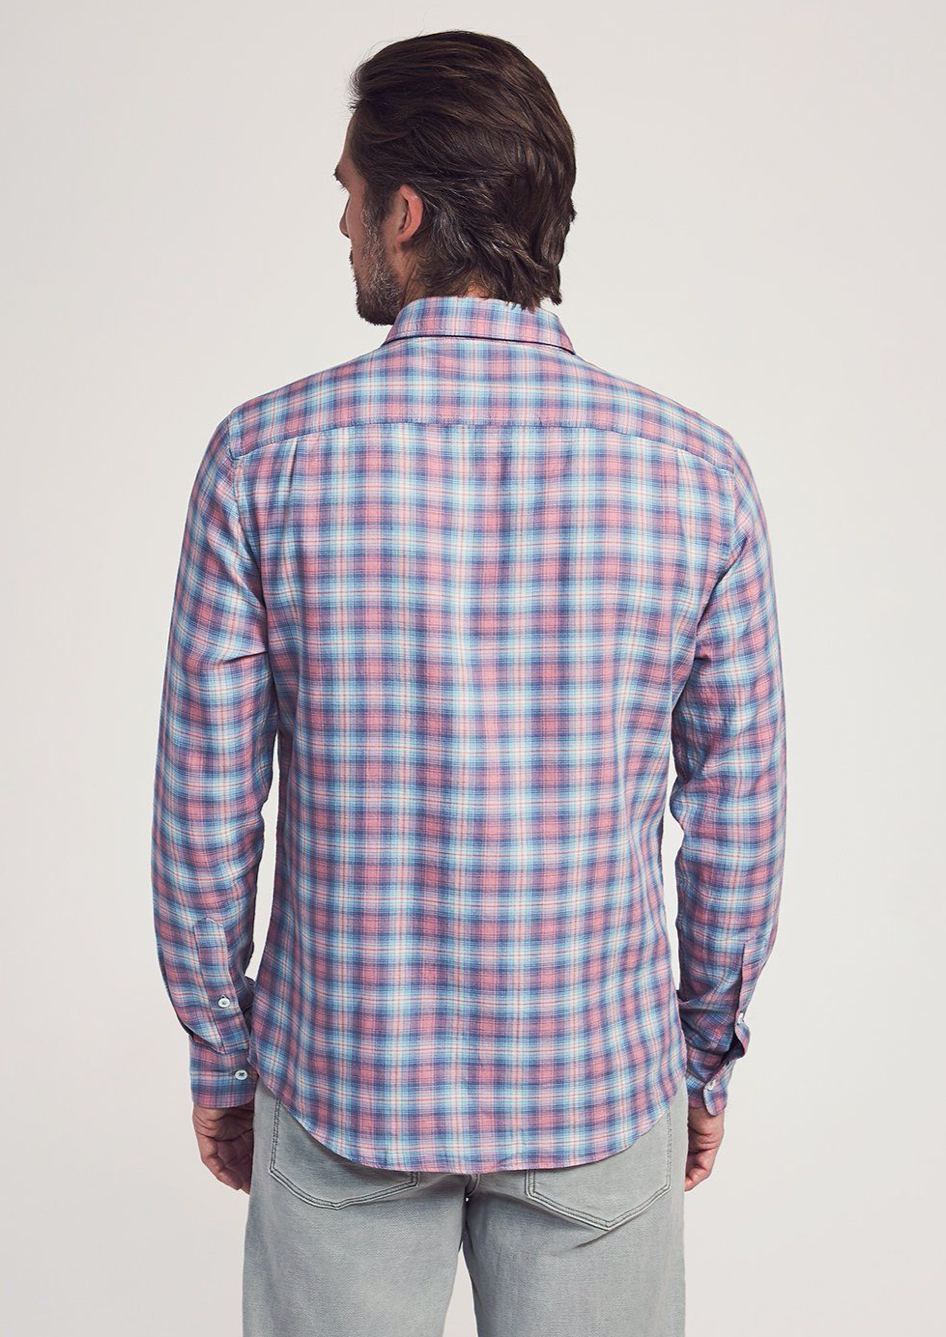 Cloud Cotton Everyday Shirt